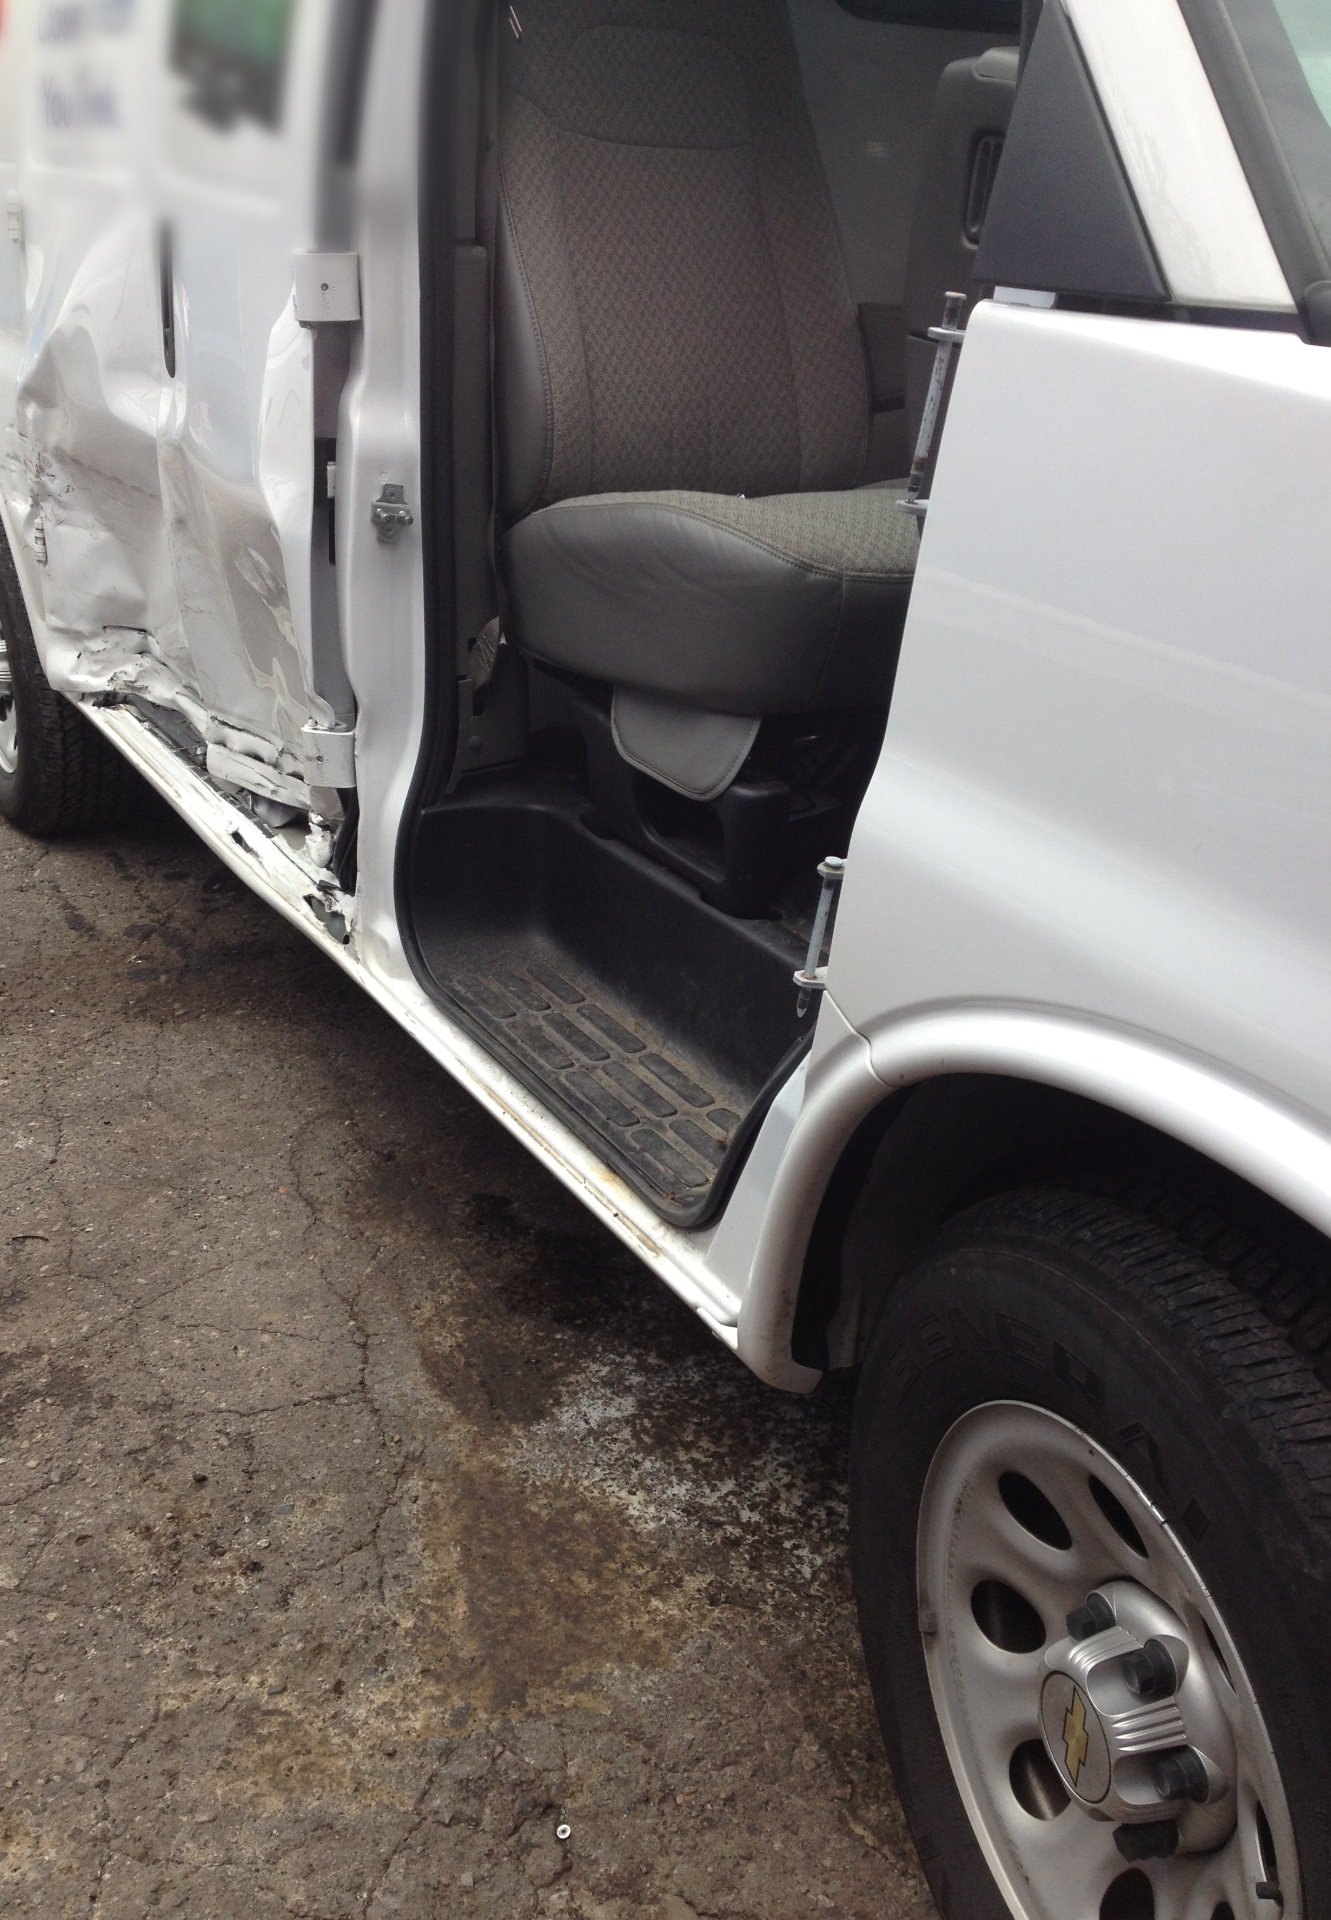 Major Damage-2015 Chev Express